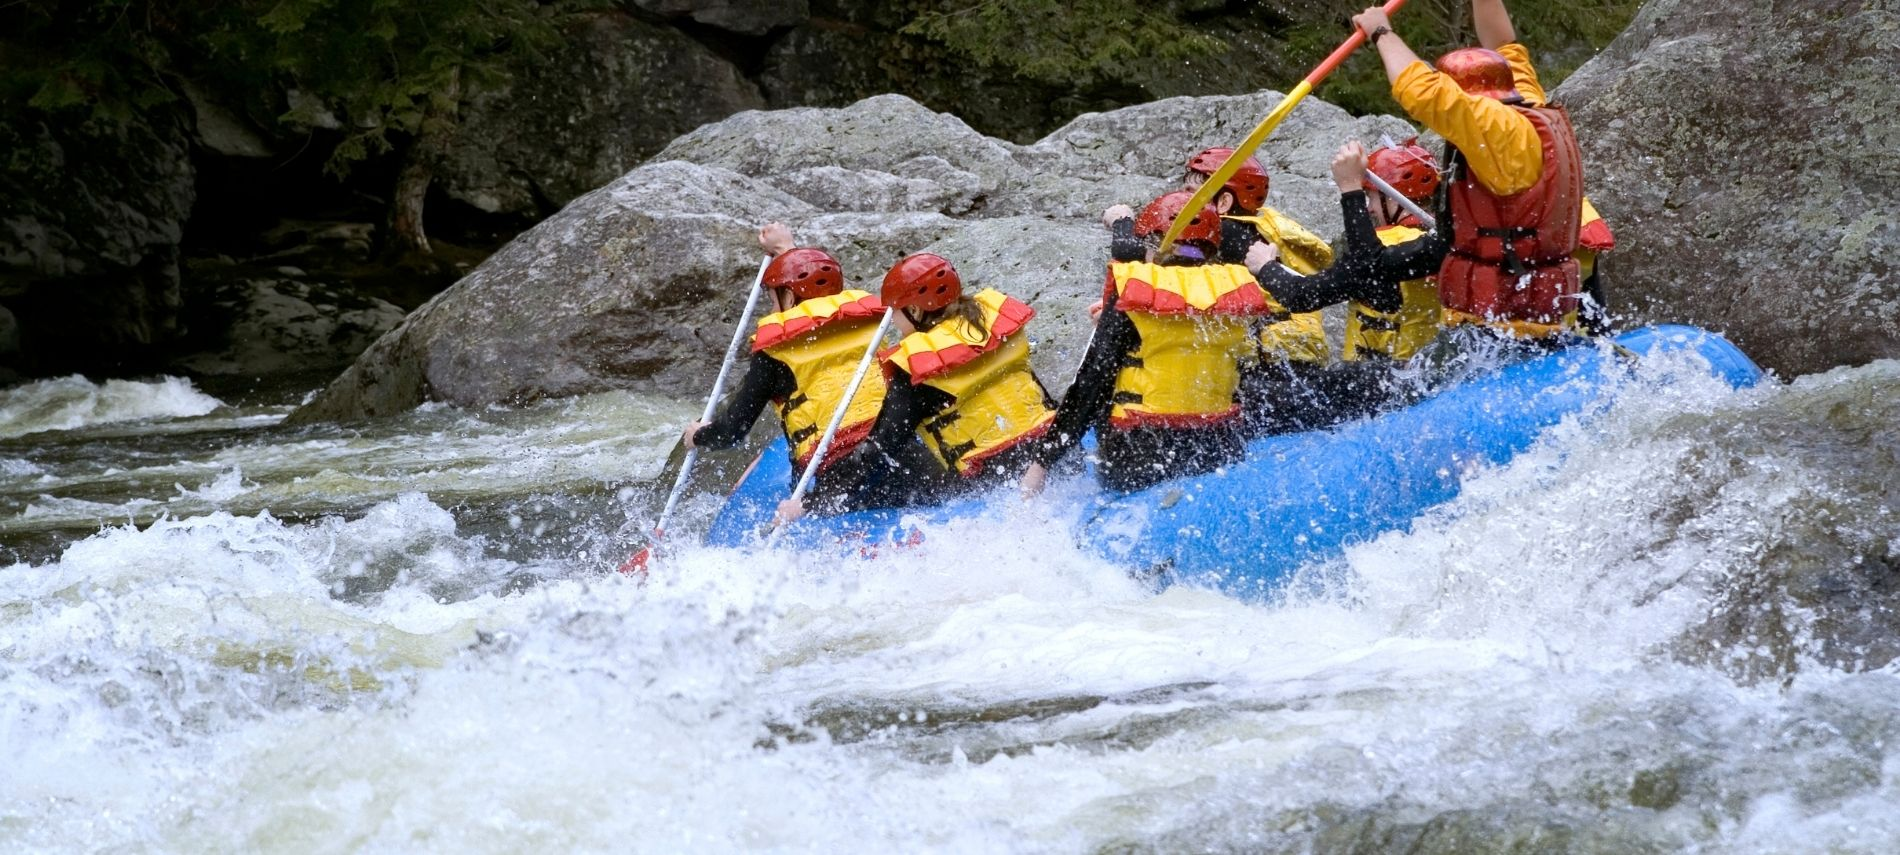 Group of people white water river rafting